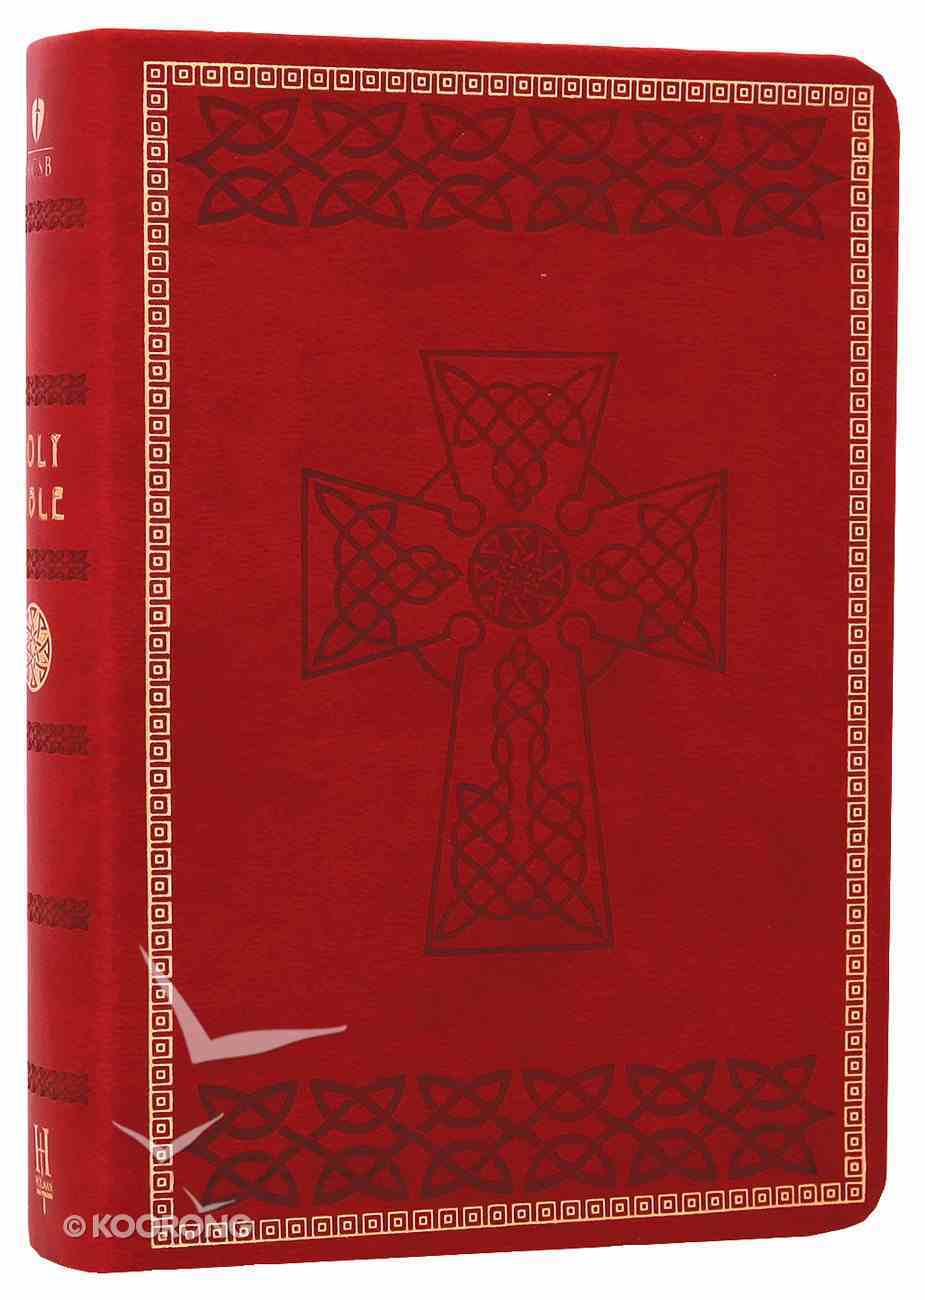 HCSB Compact Large Print Crimson Red Celtic Design Imitation Leather